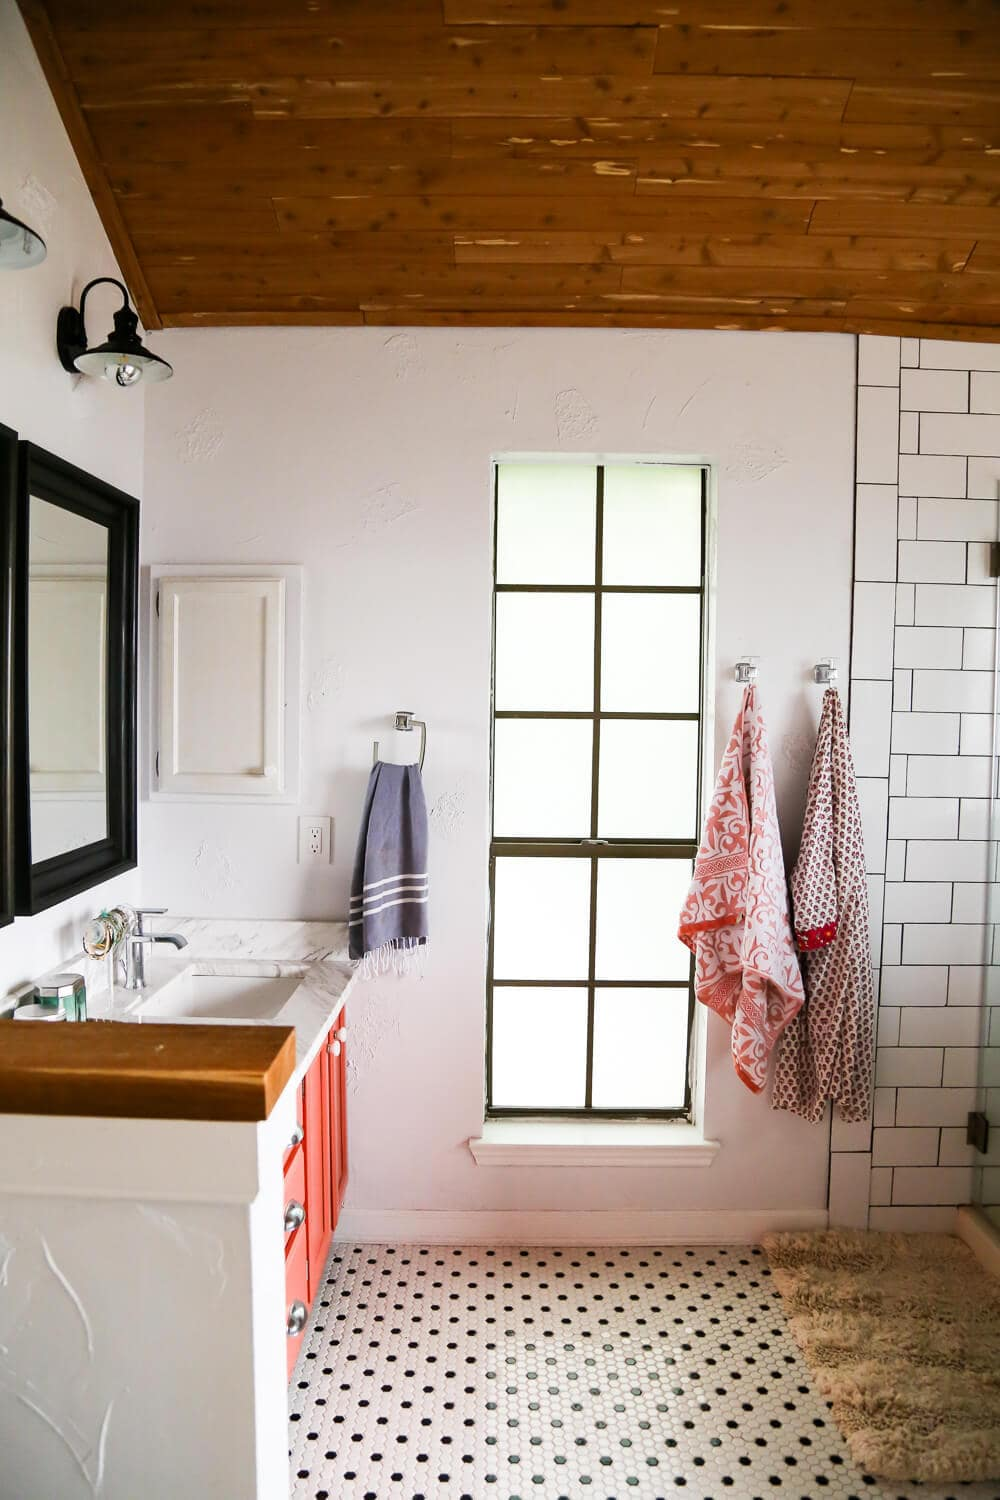 DIY Bathroom Remodel (Ideas for a Budget-Friendly, Beautiful Remodel)